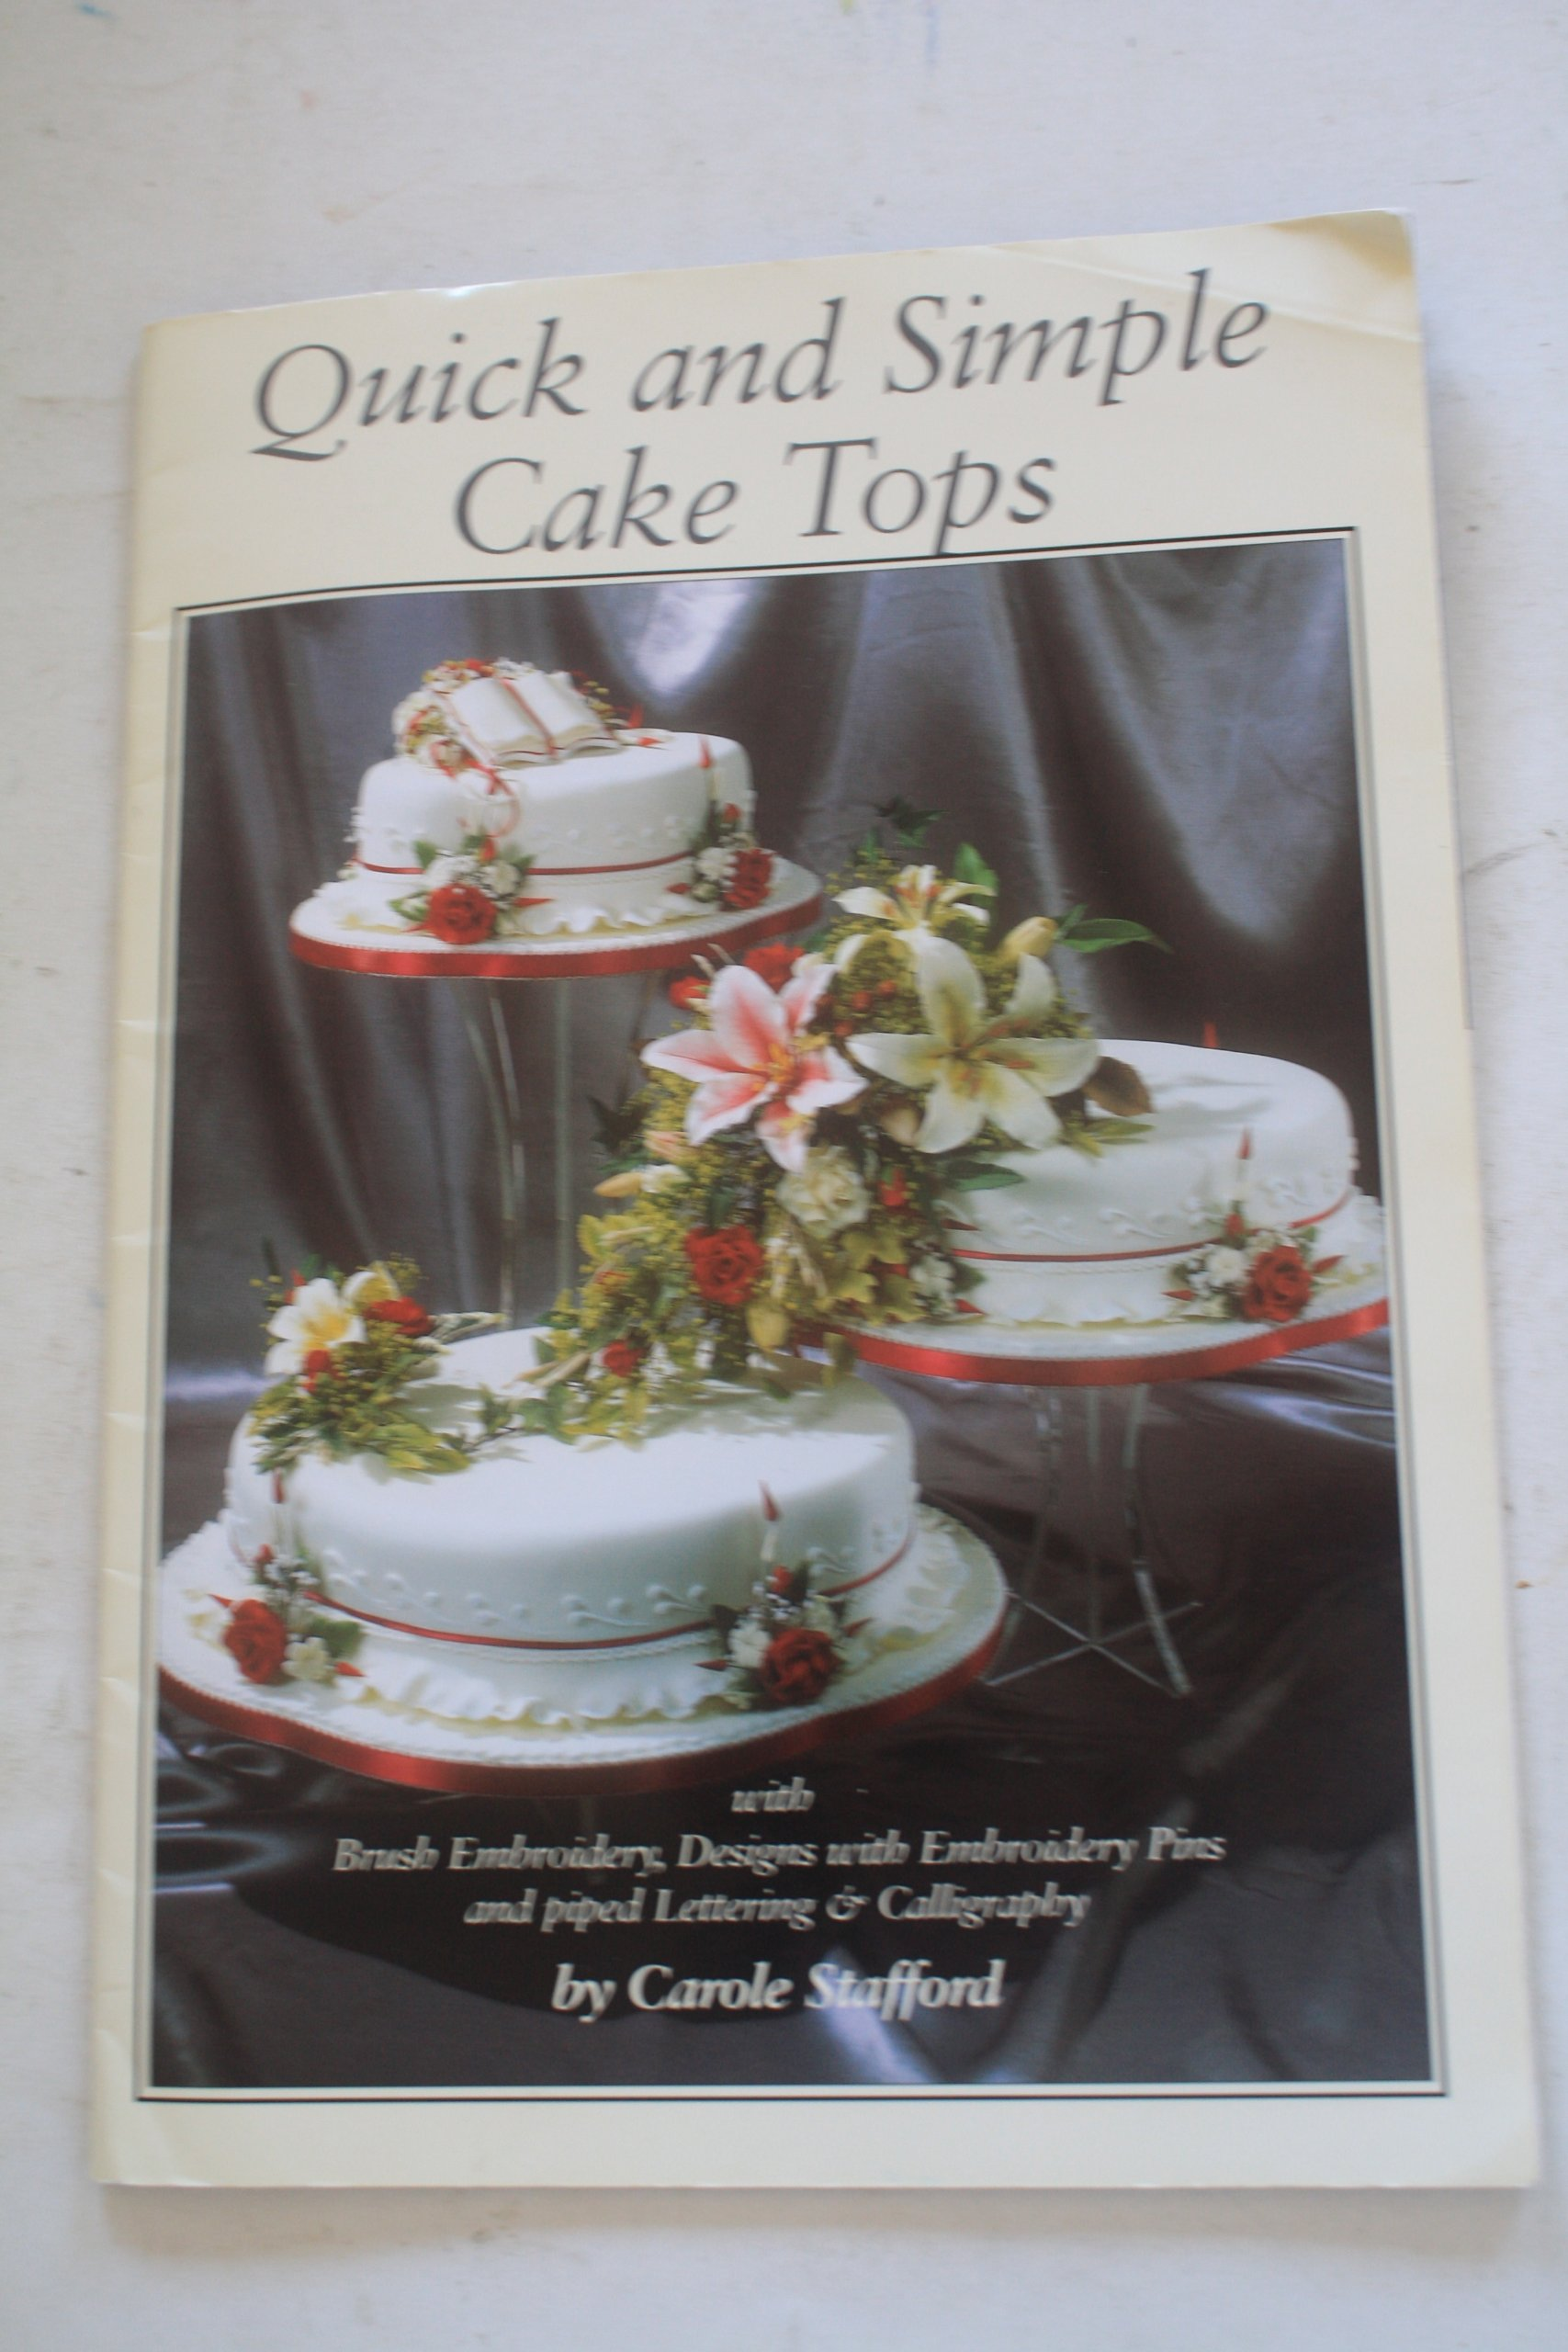 Quick And Simple Cake Tops With Brush Embroidery Designs Pins Piped Lettering Calligraphy Paperback November 1998